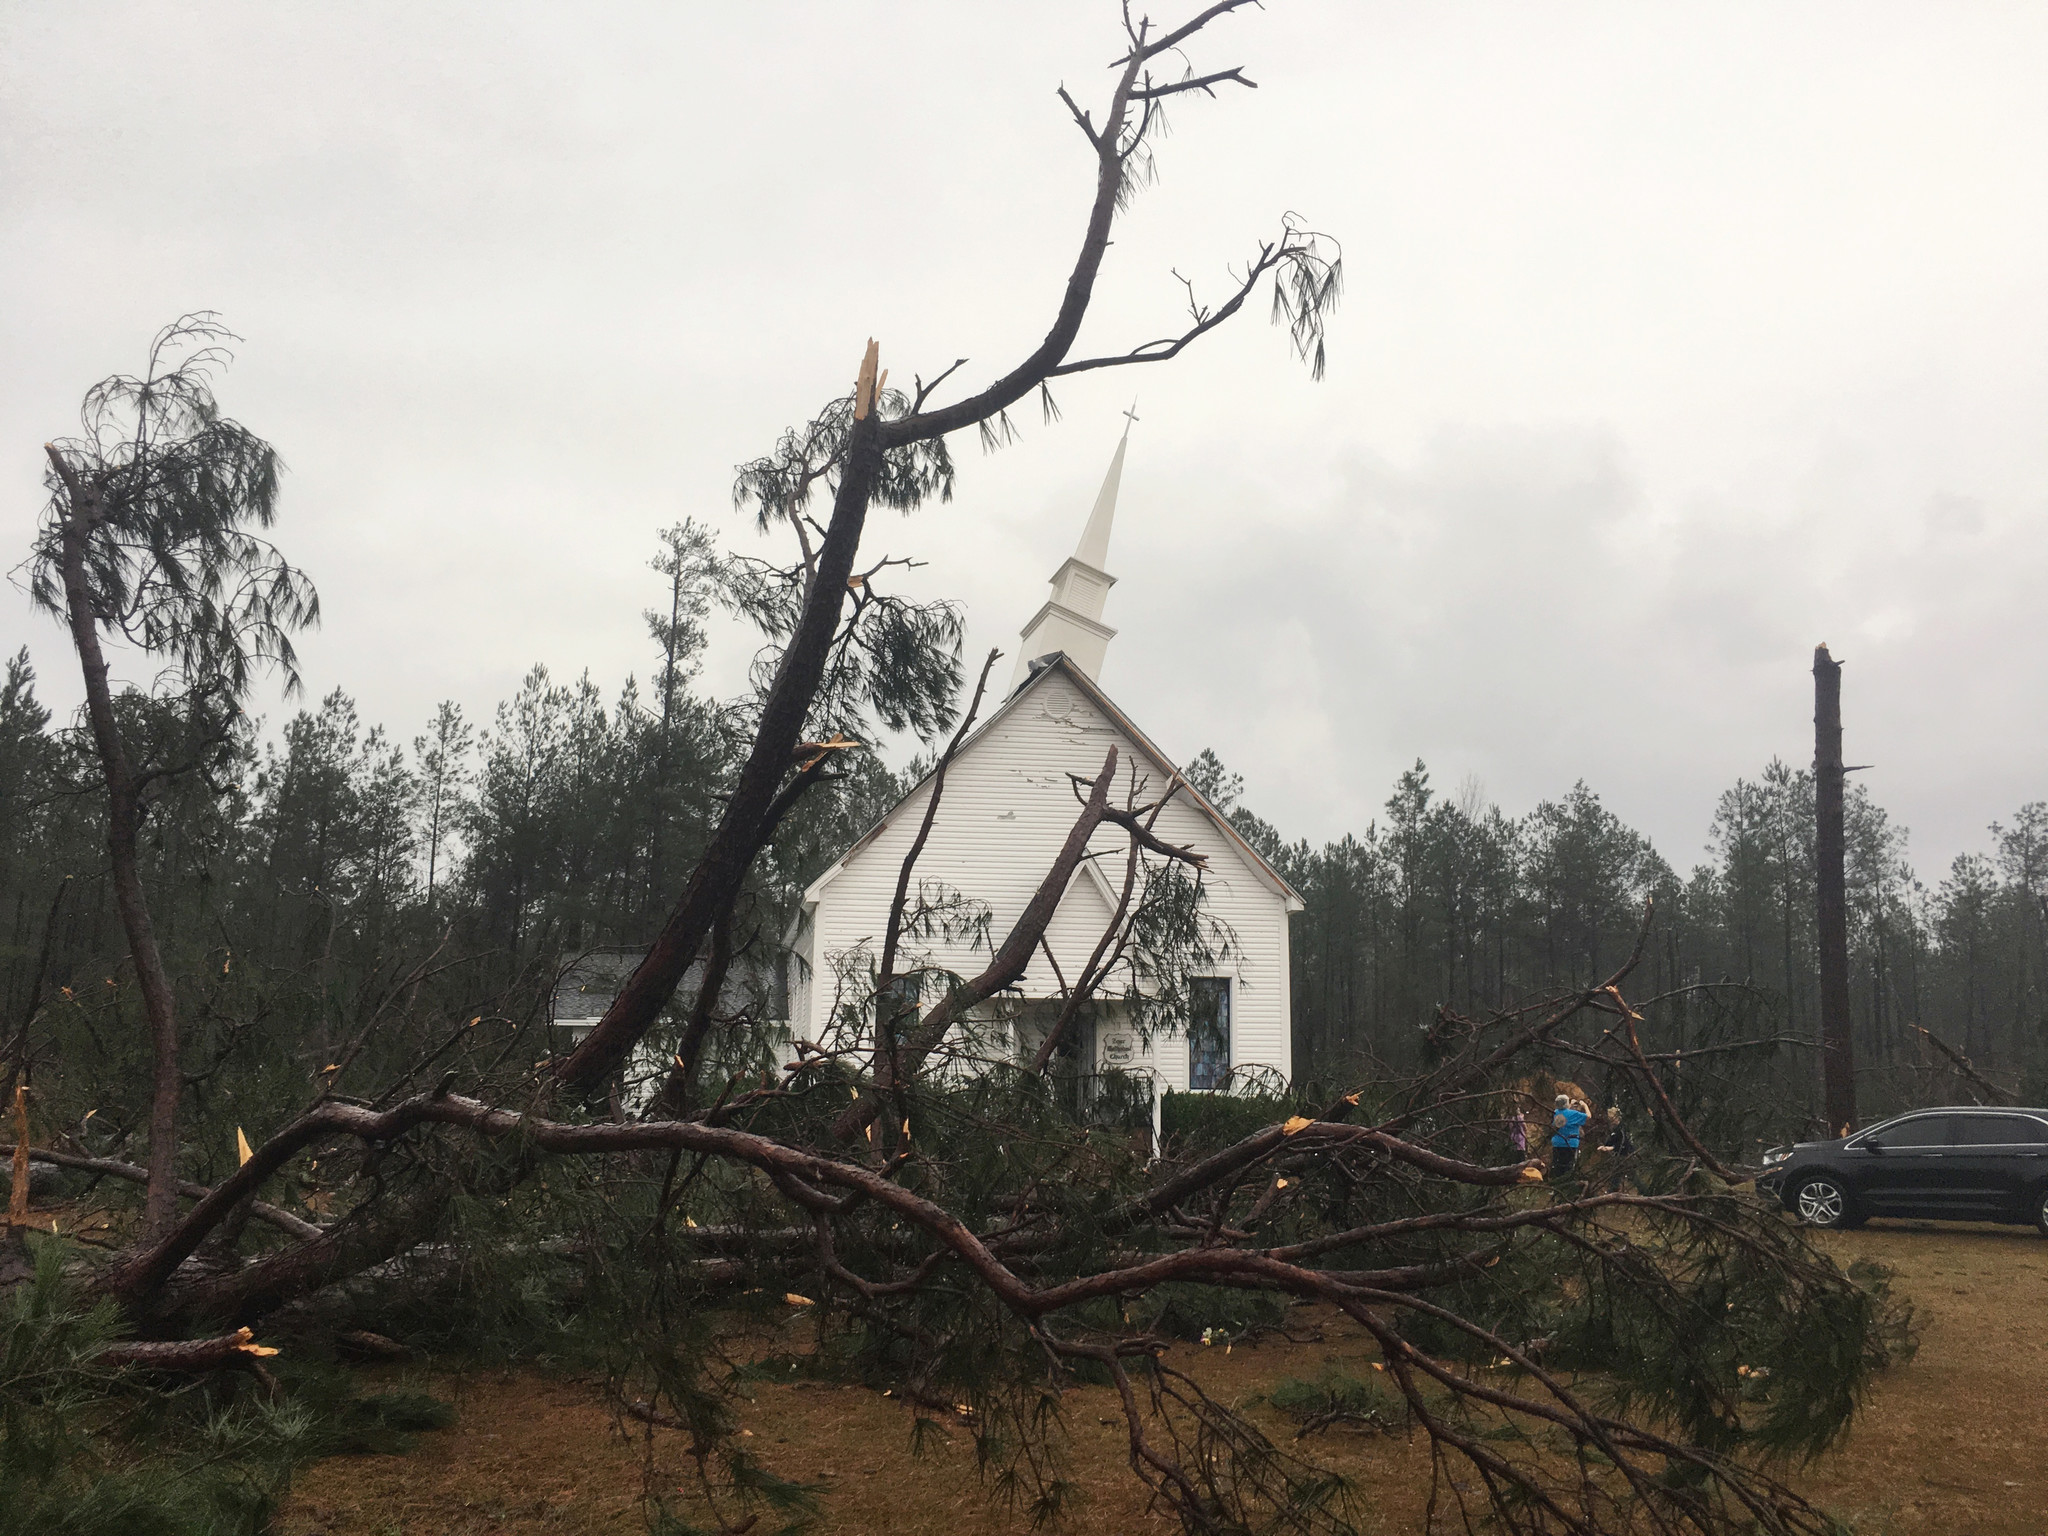 18 Dead Amid Reported Tornadoes Other Storms In The South